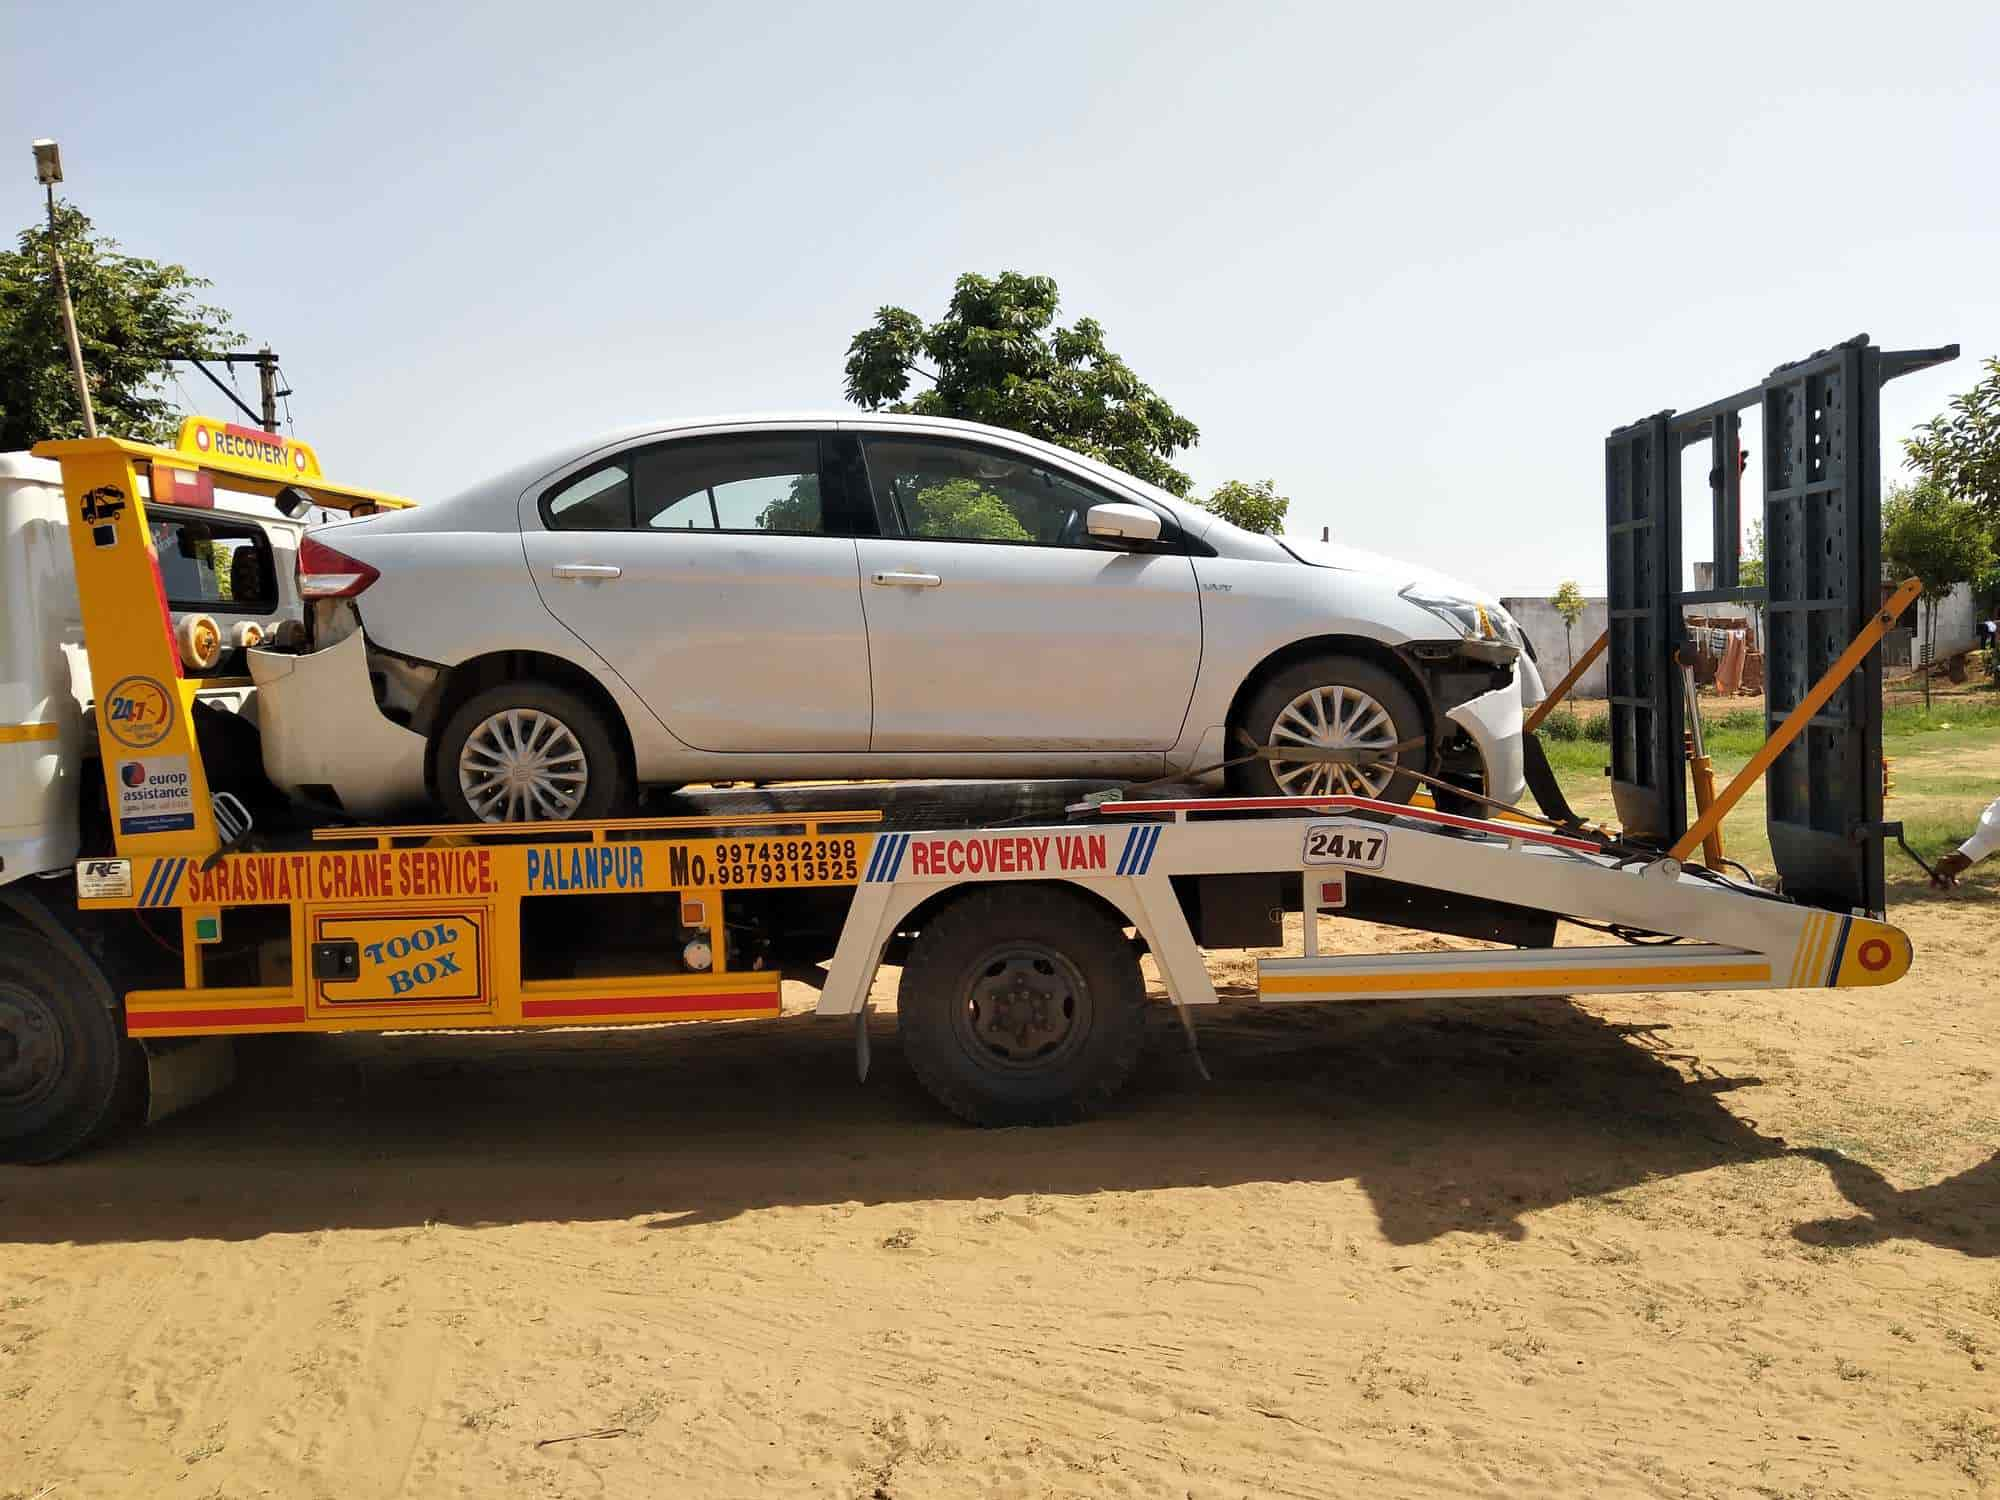 Top Towing Services in Palanpur - Best Roadside Assistance - Justdial